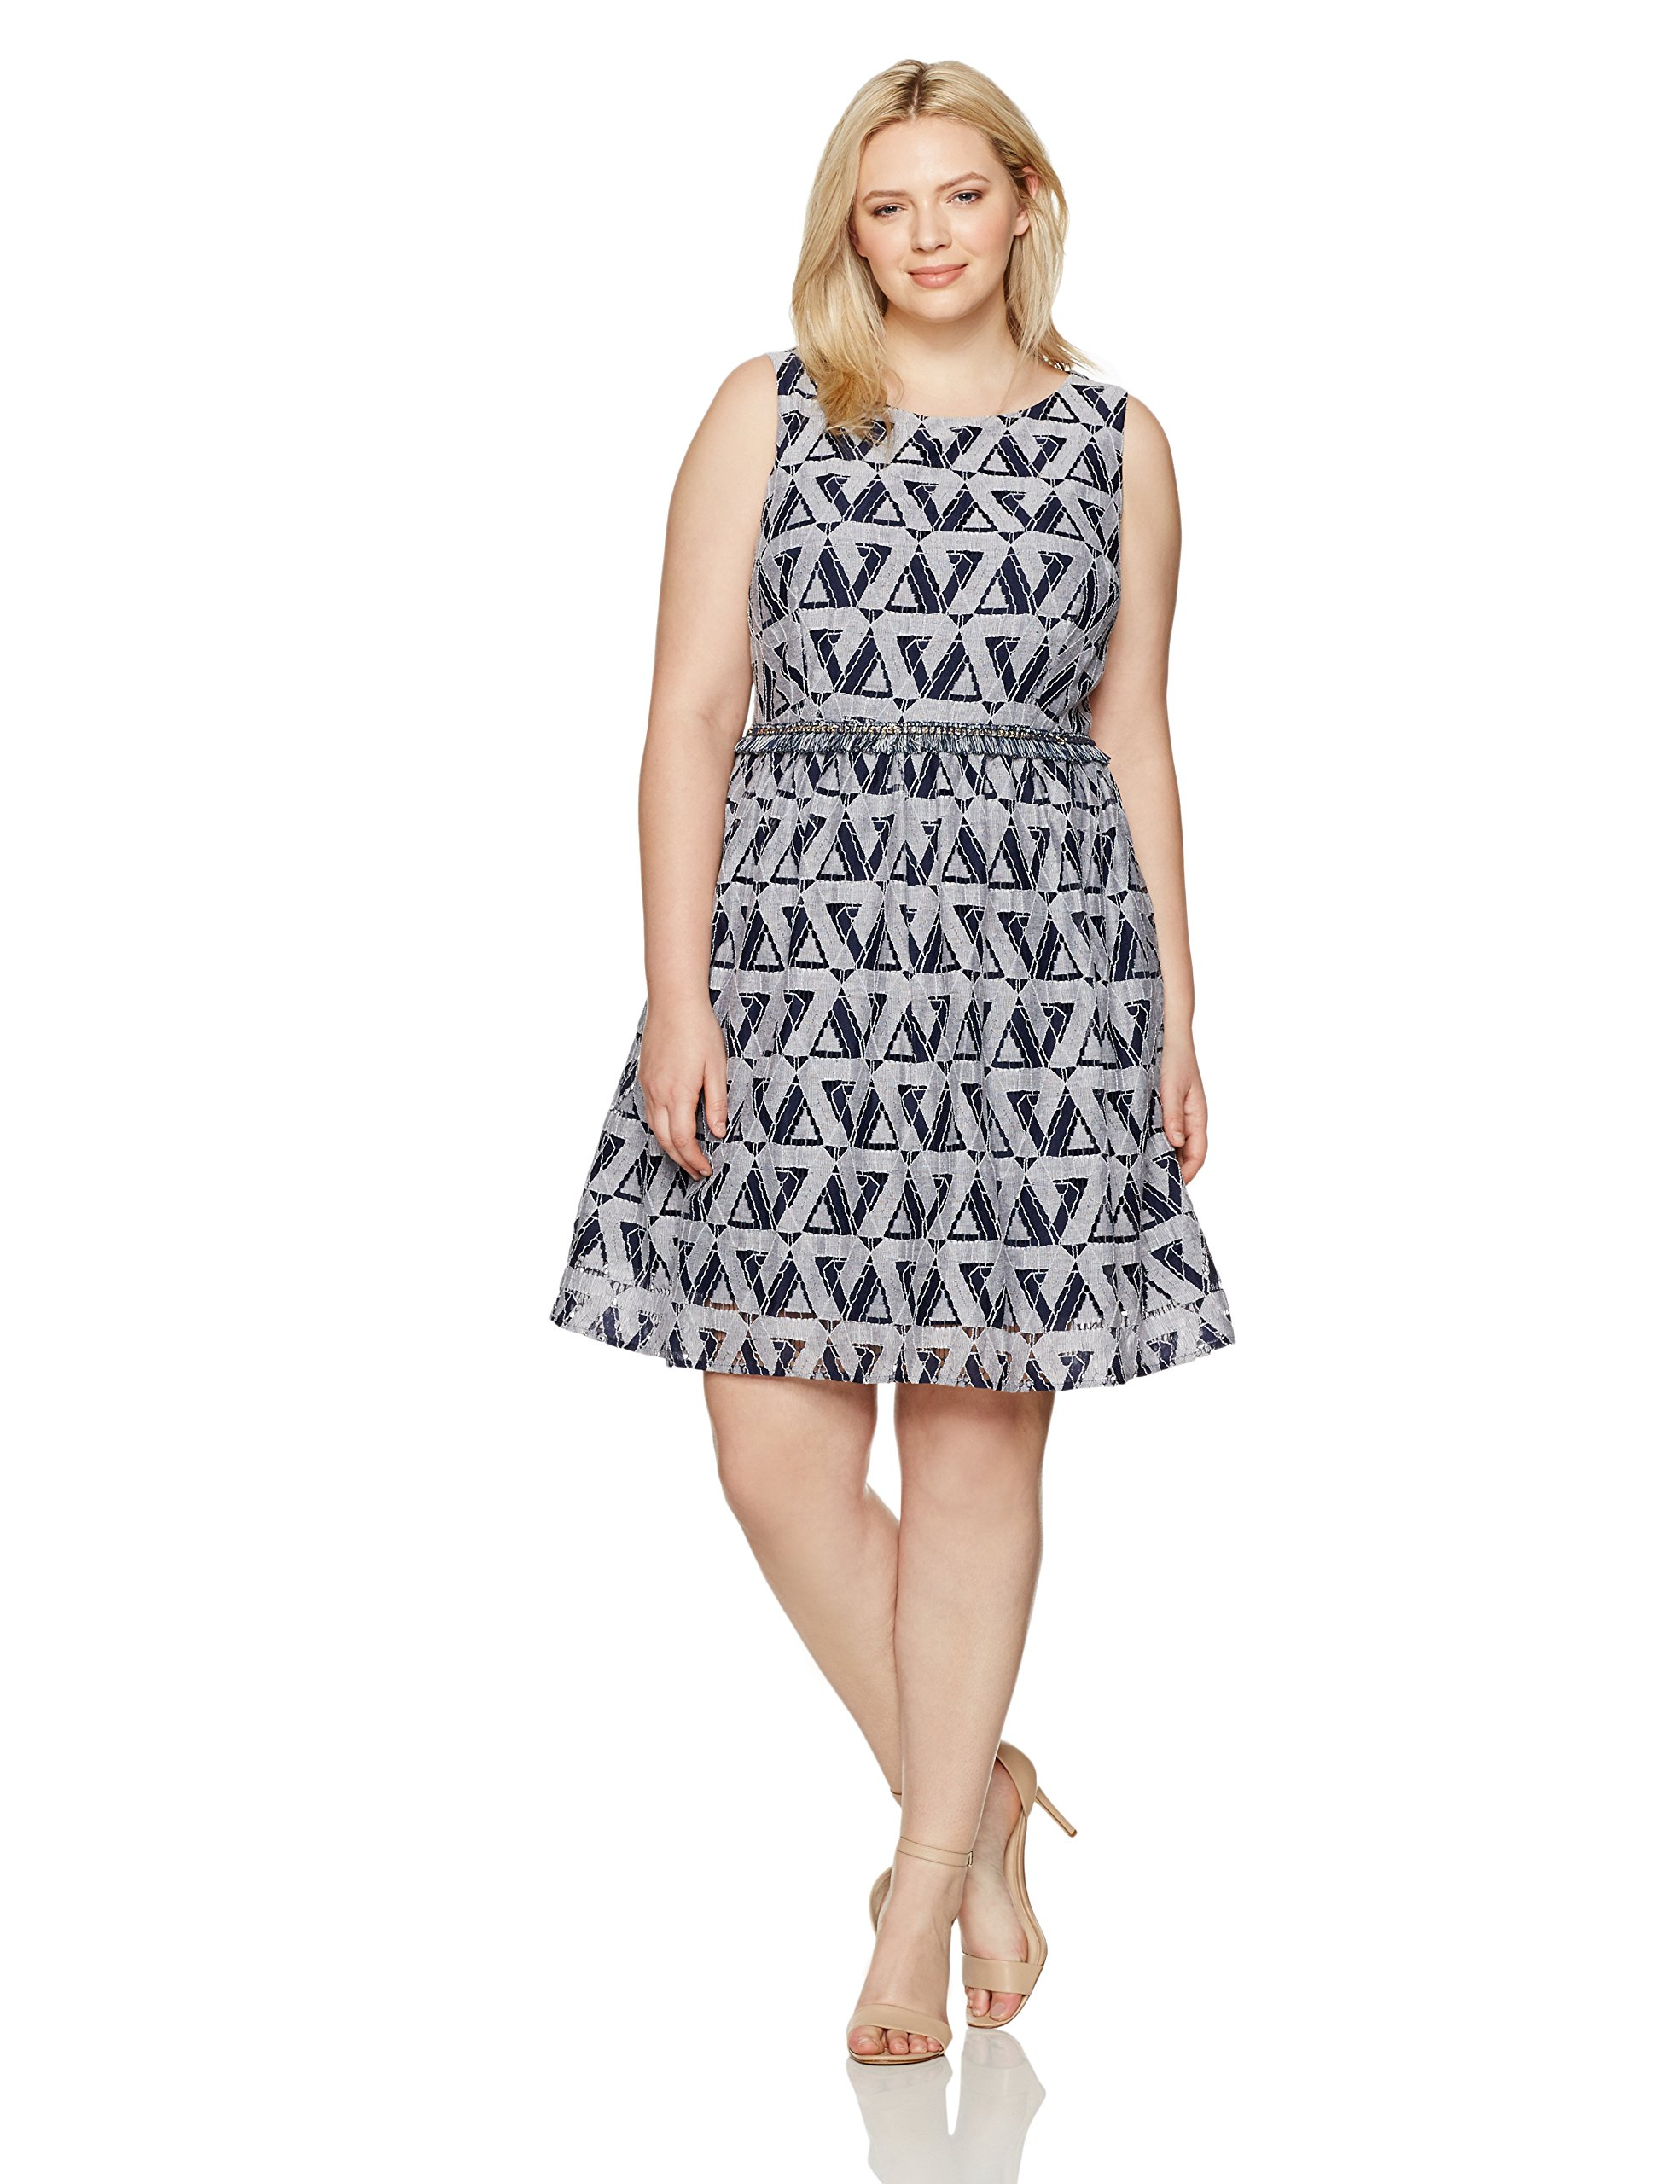 Julia Jordan Women's Plus Size One Piece Round Neck Printed Fit and Flare, Navy/White, 22W by Julia Jordan